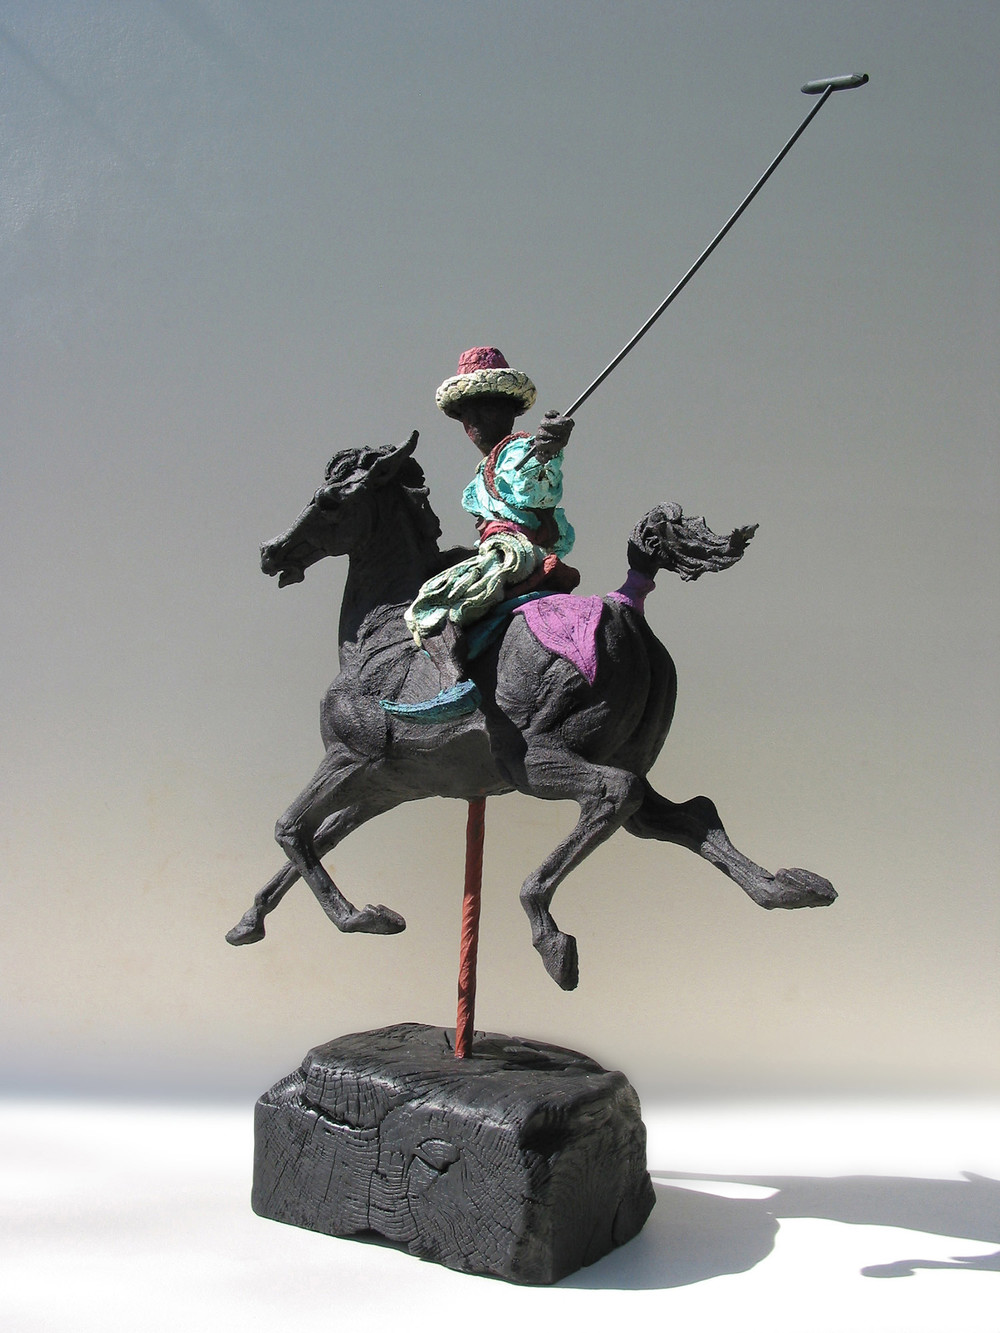 Persian Polo lll   ©  74 cm high x 58 cm wide  Unique